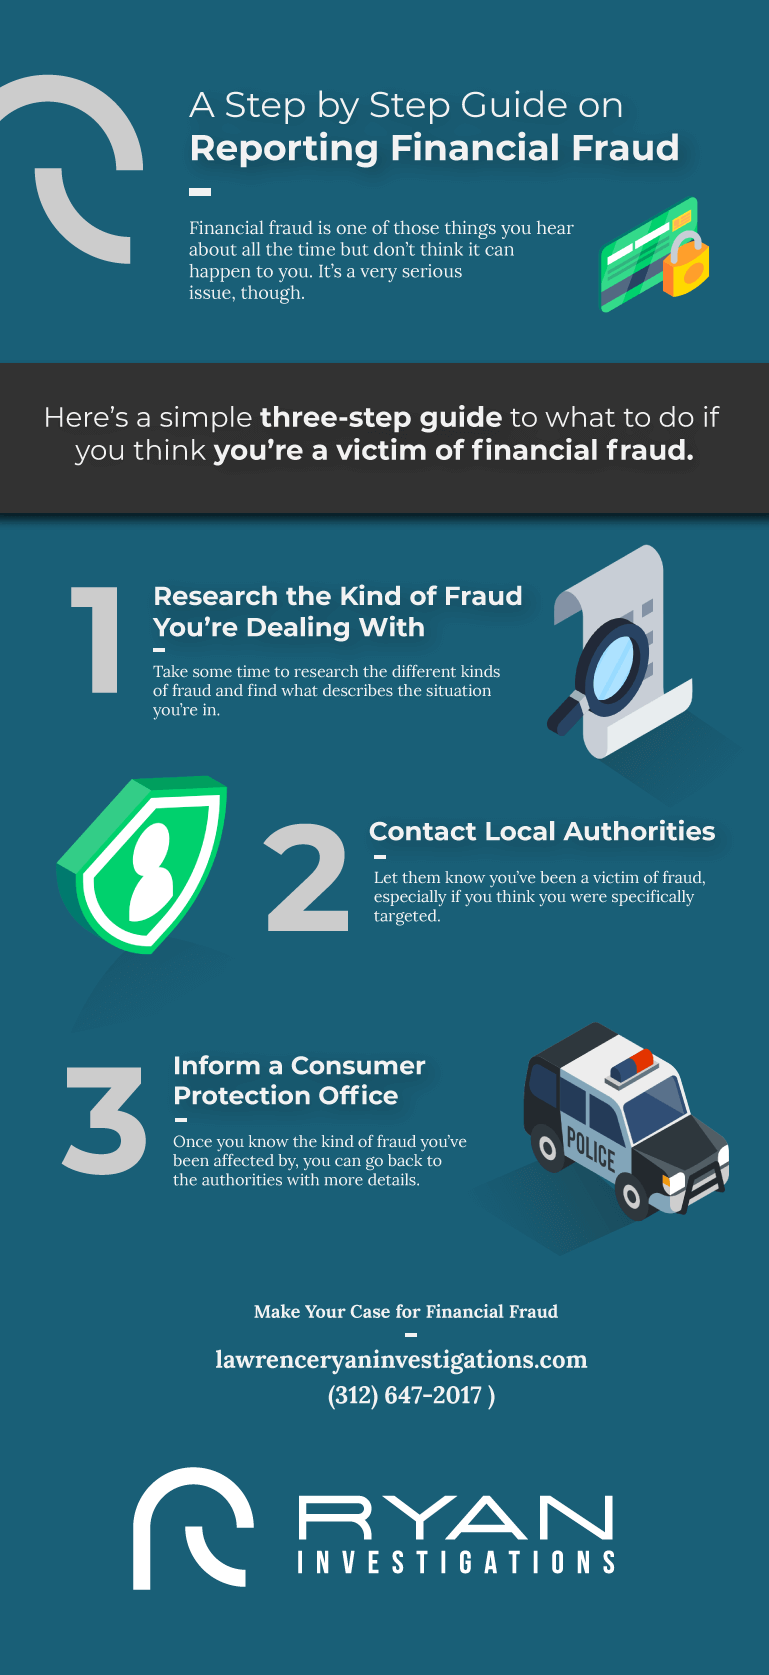 How to report financial fraud